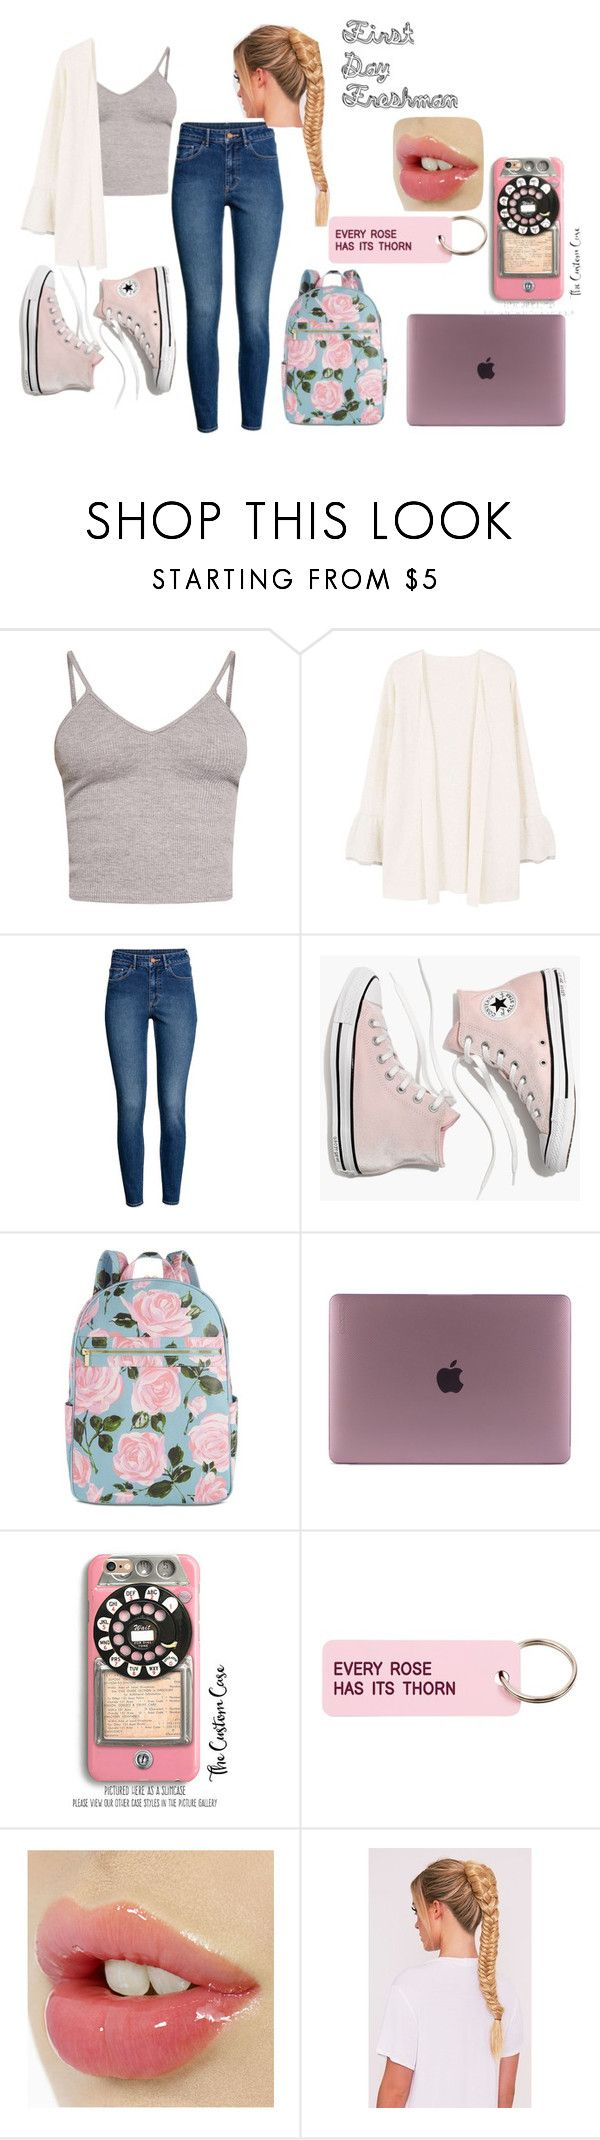 """First Day, Freshman!"" by abryancat ❤ liked on Polyvore featuring BasicGrey, MANGO, H&M, Madewell, ban.do, Samsung and Various Projects"